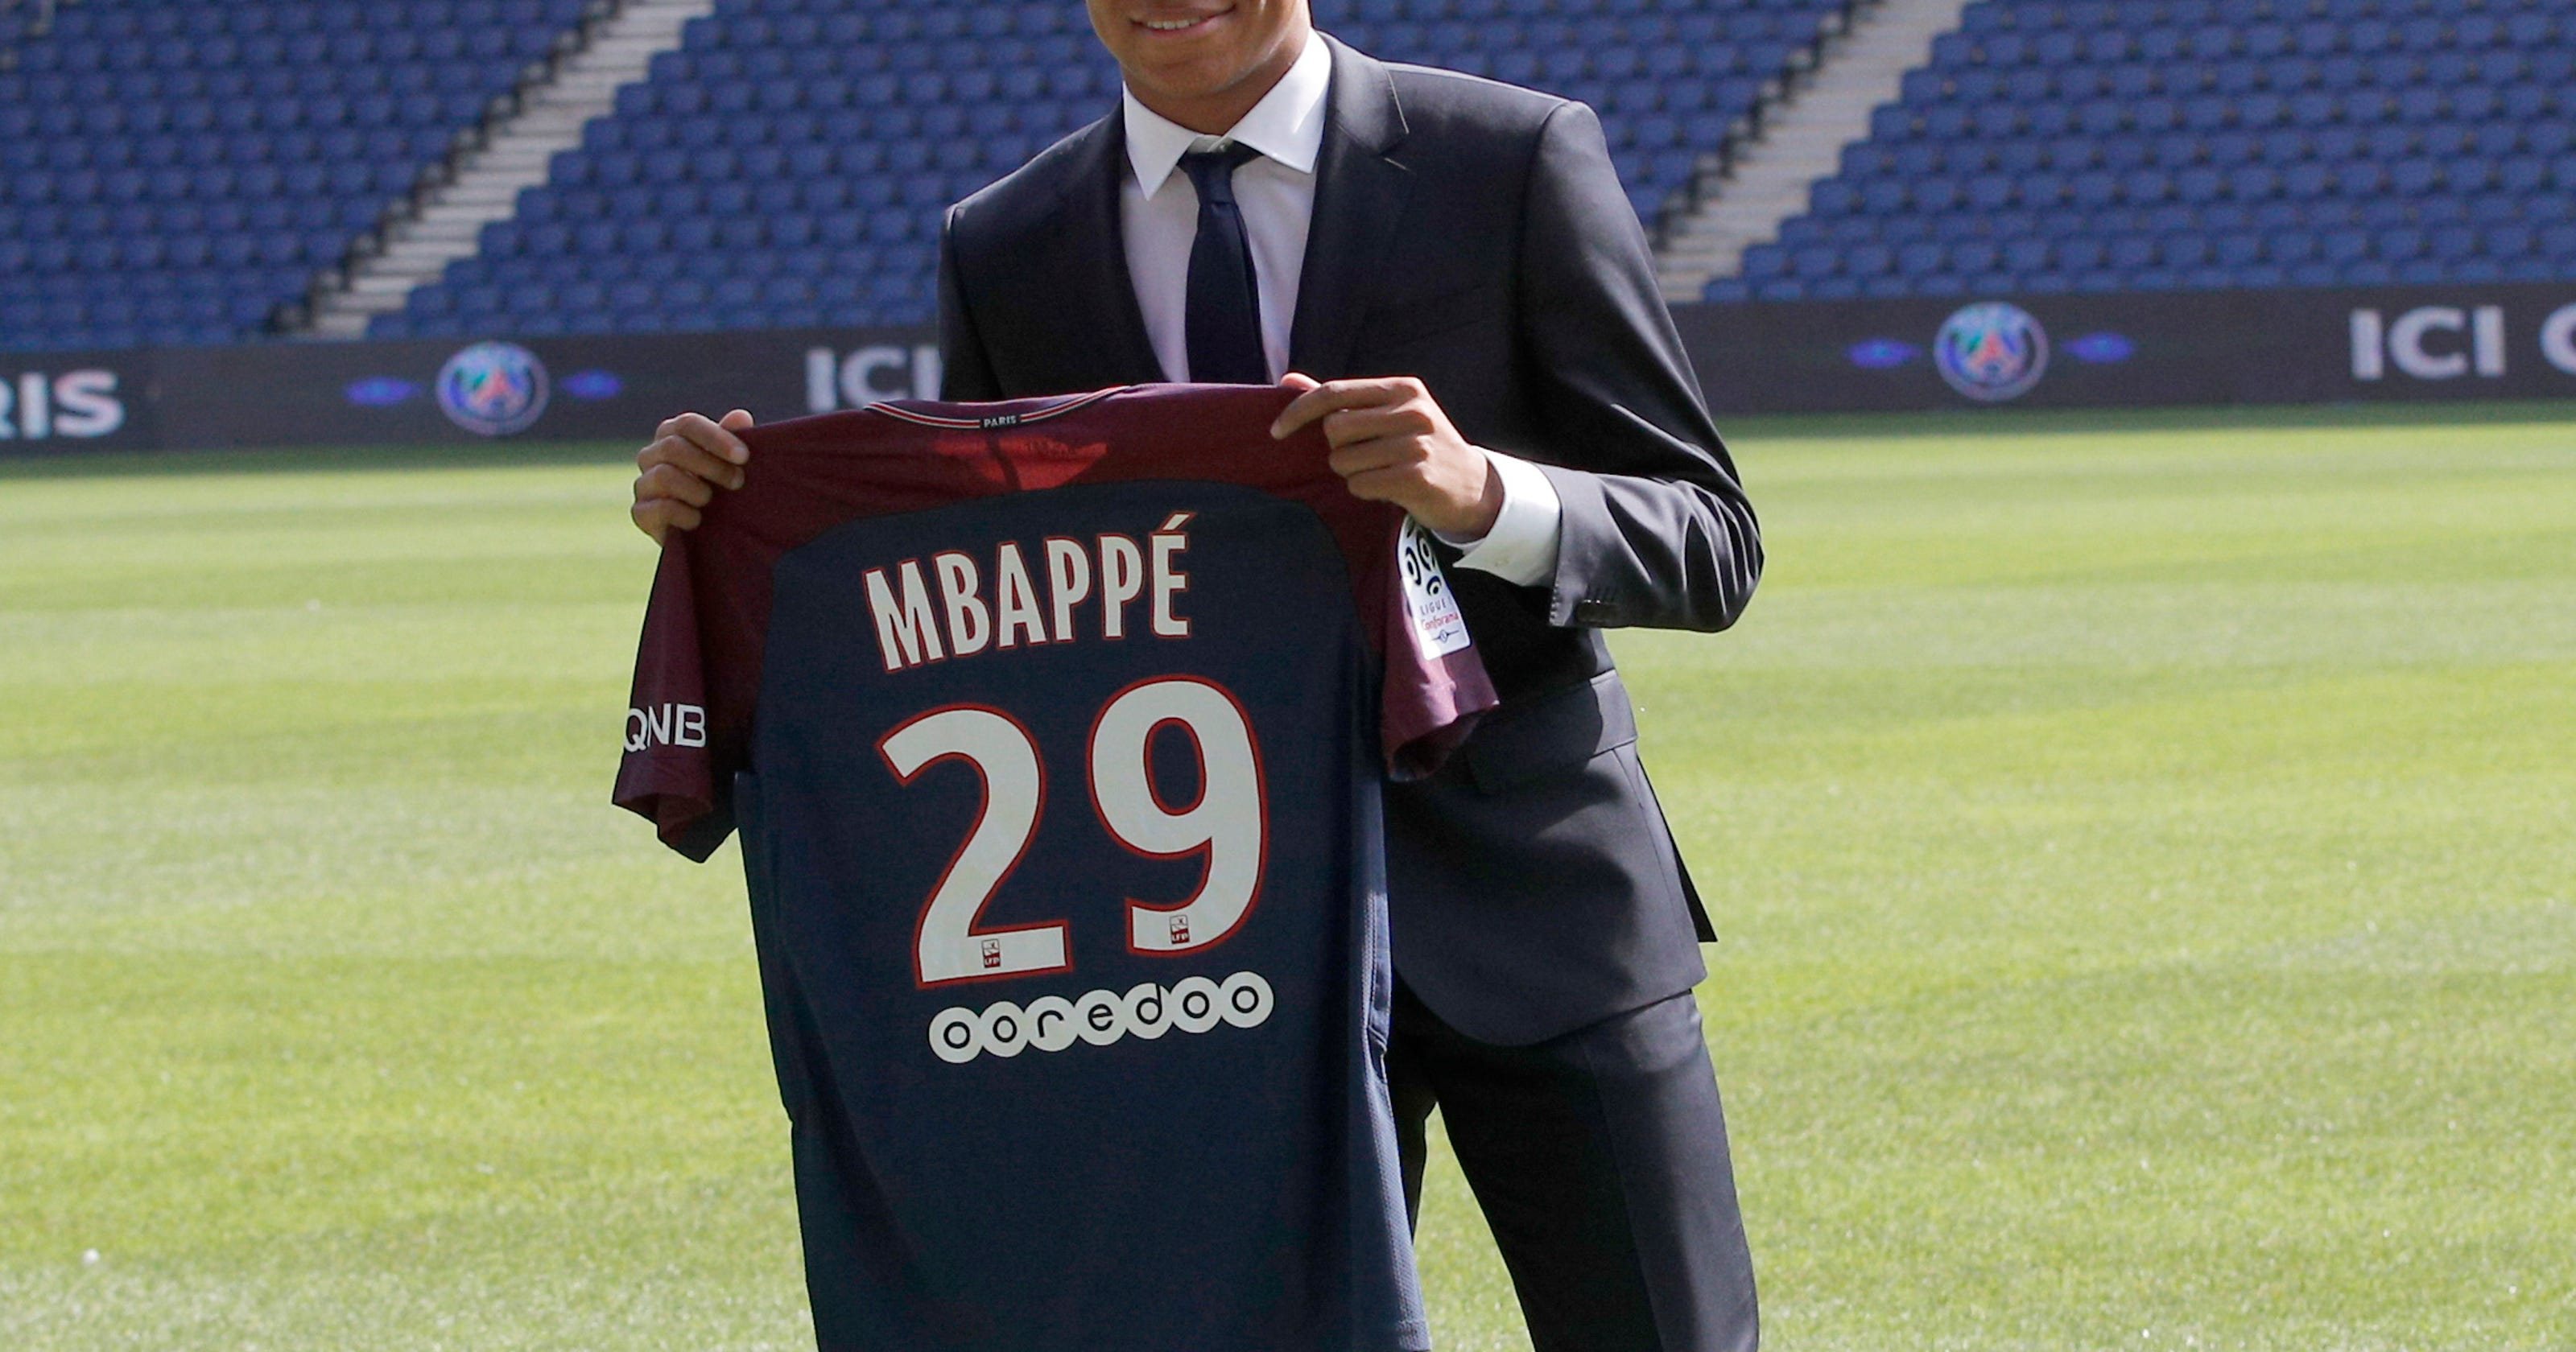 newest b42e8 af0d4 Mbappe wants to 'win everything' with PSG _ starting now